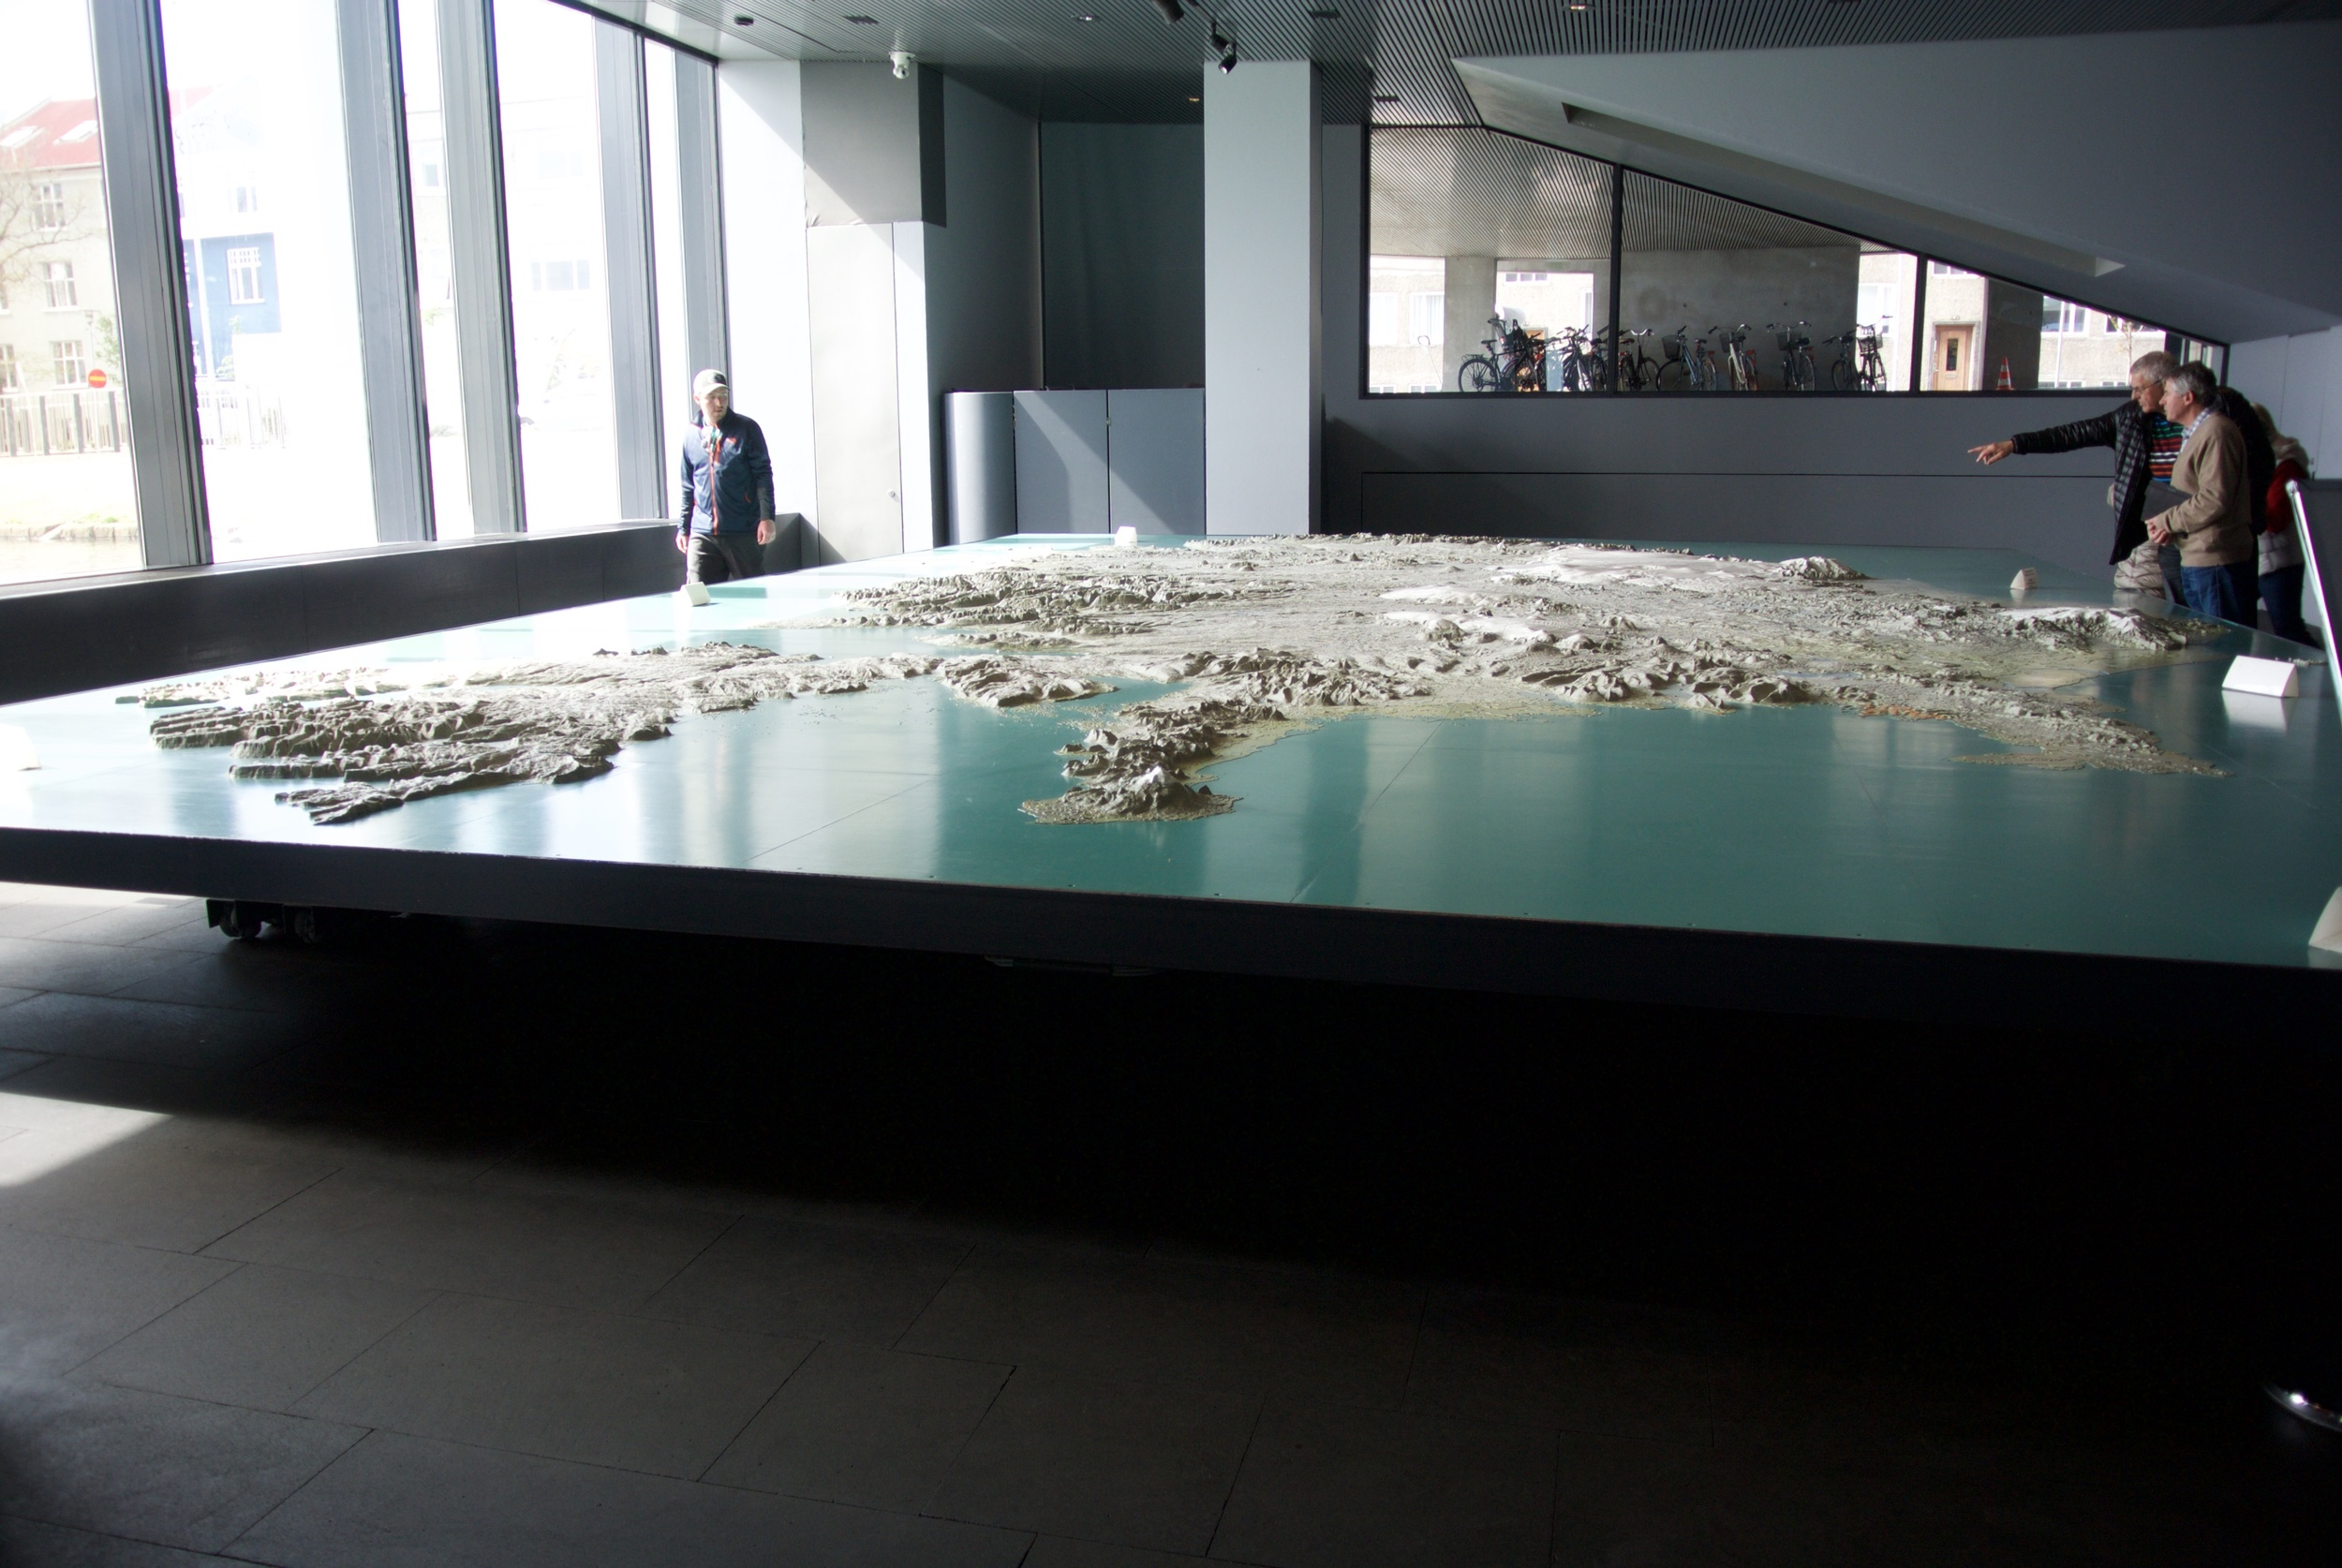 Topographical map at City Hall